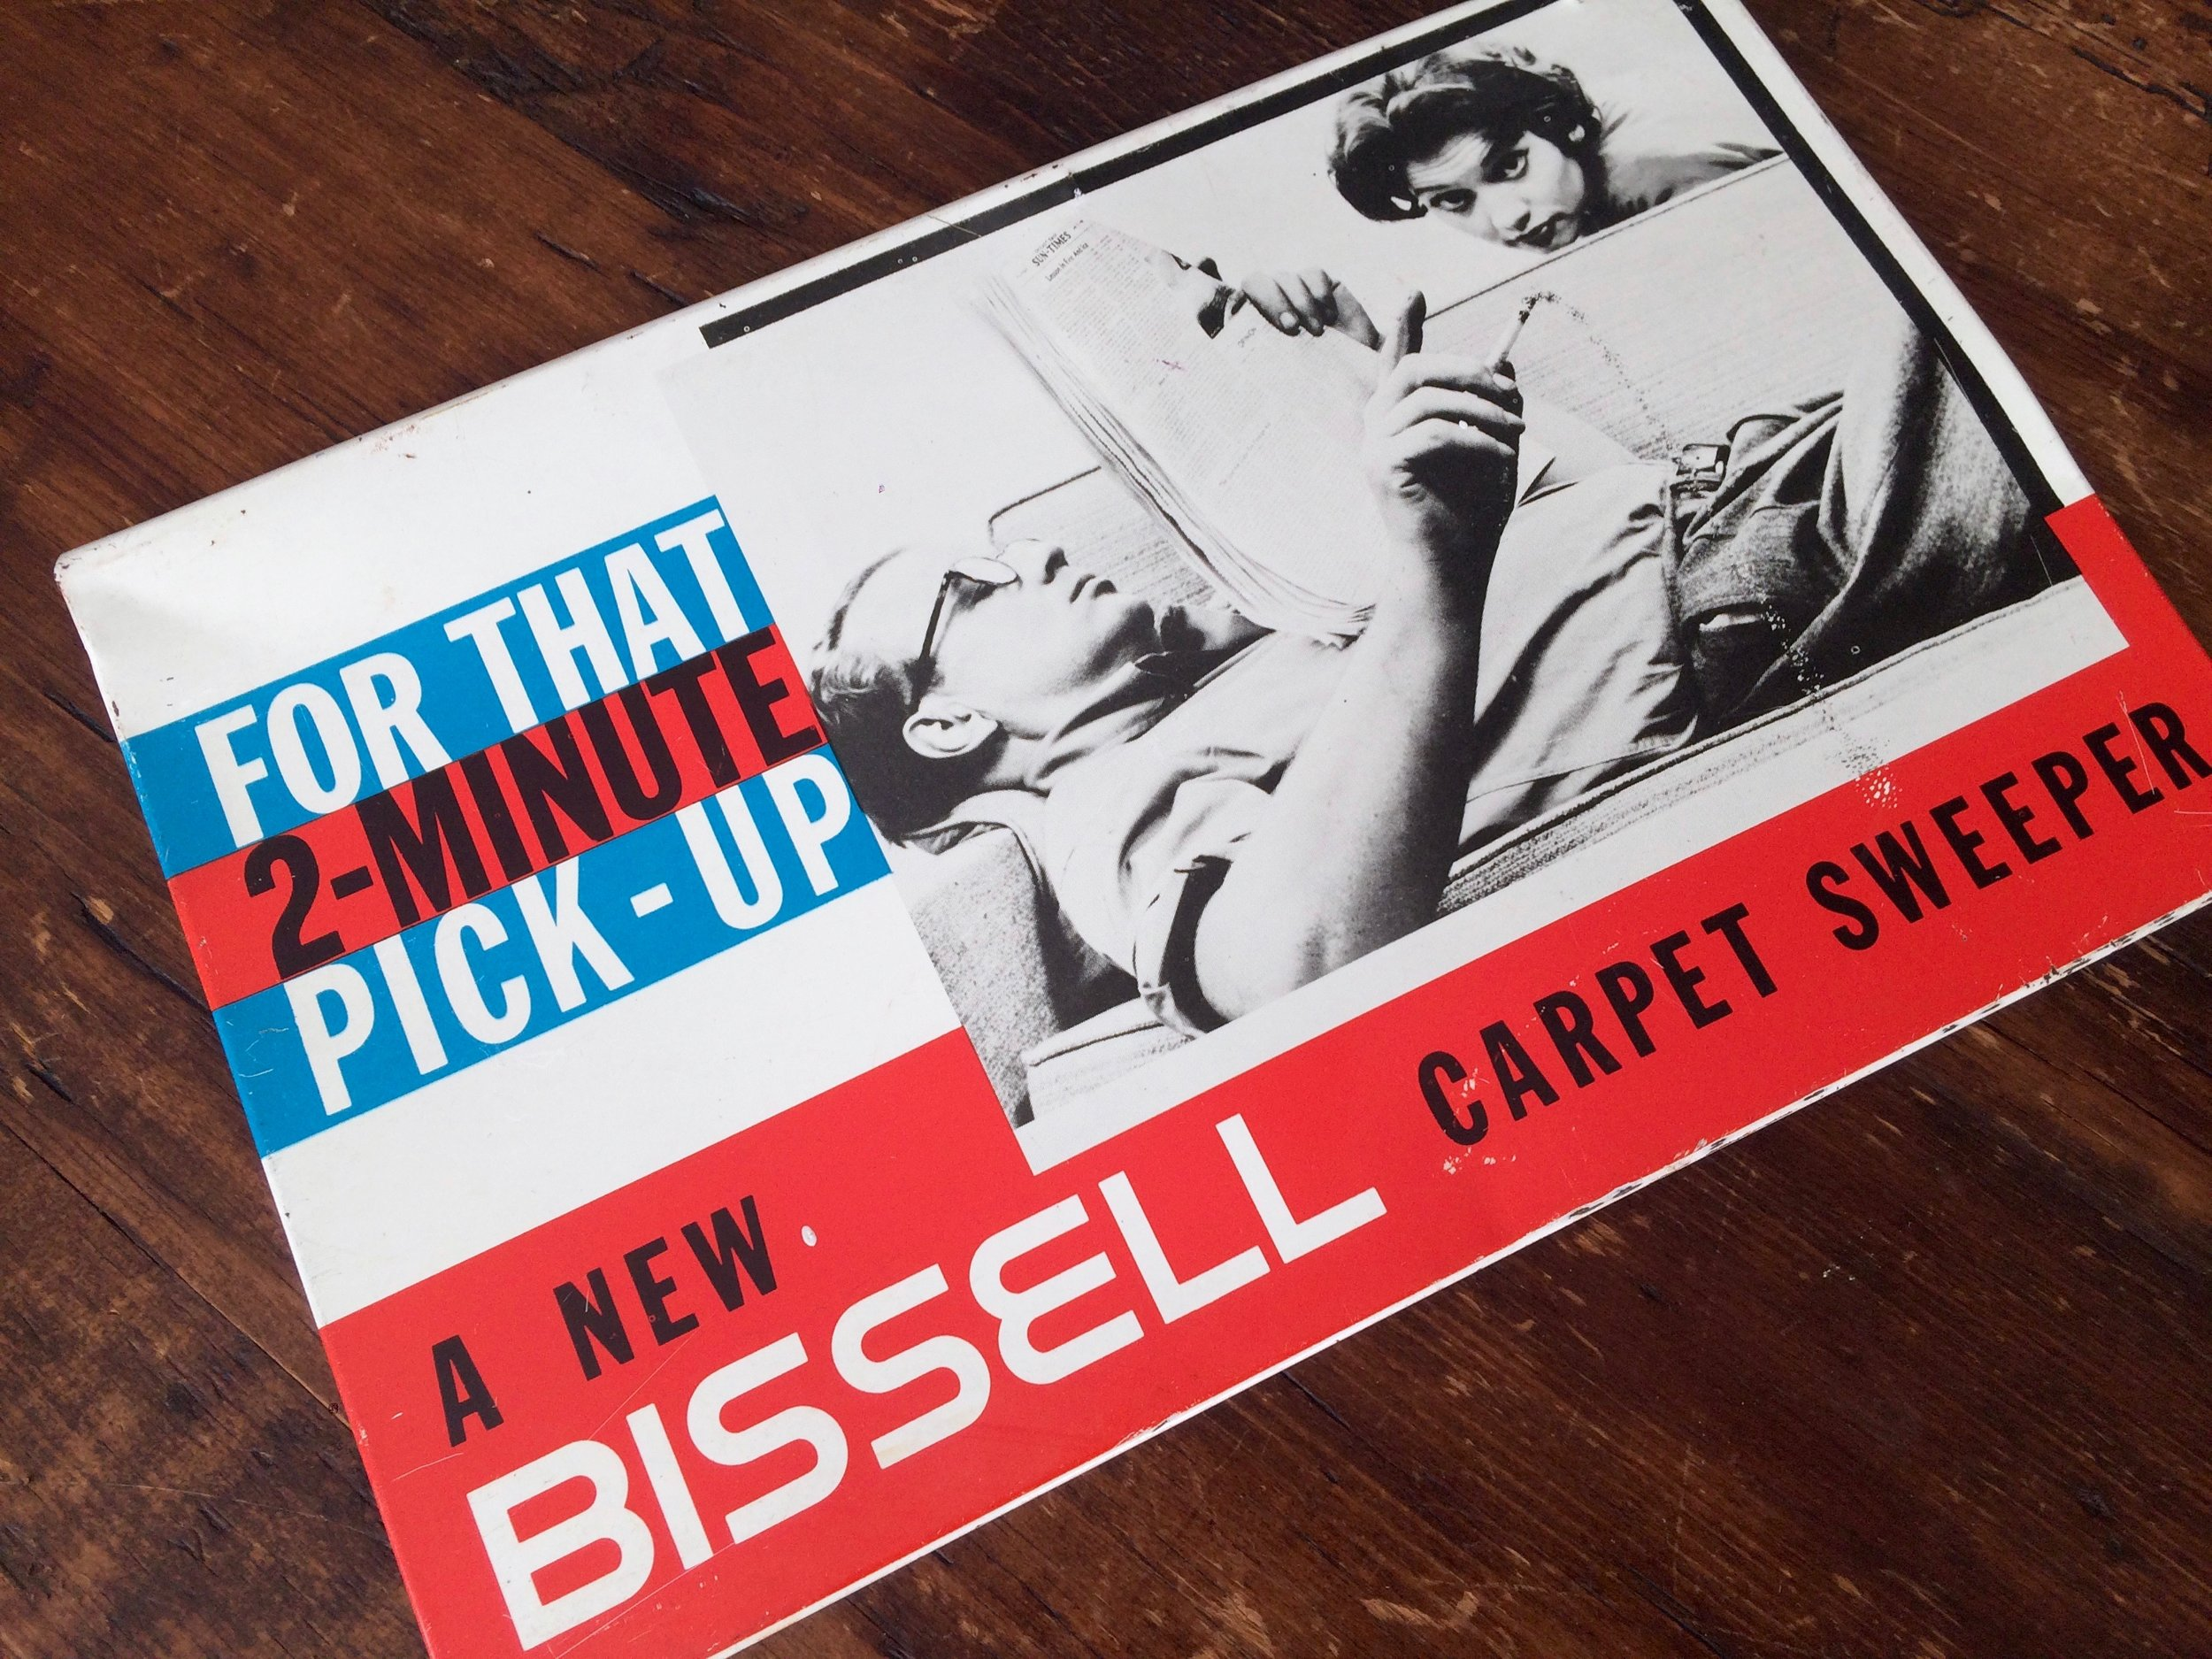 Bissell Advertising Sign